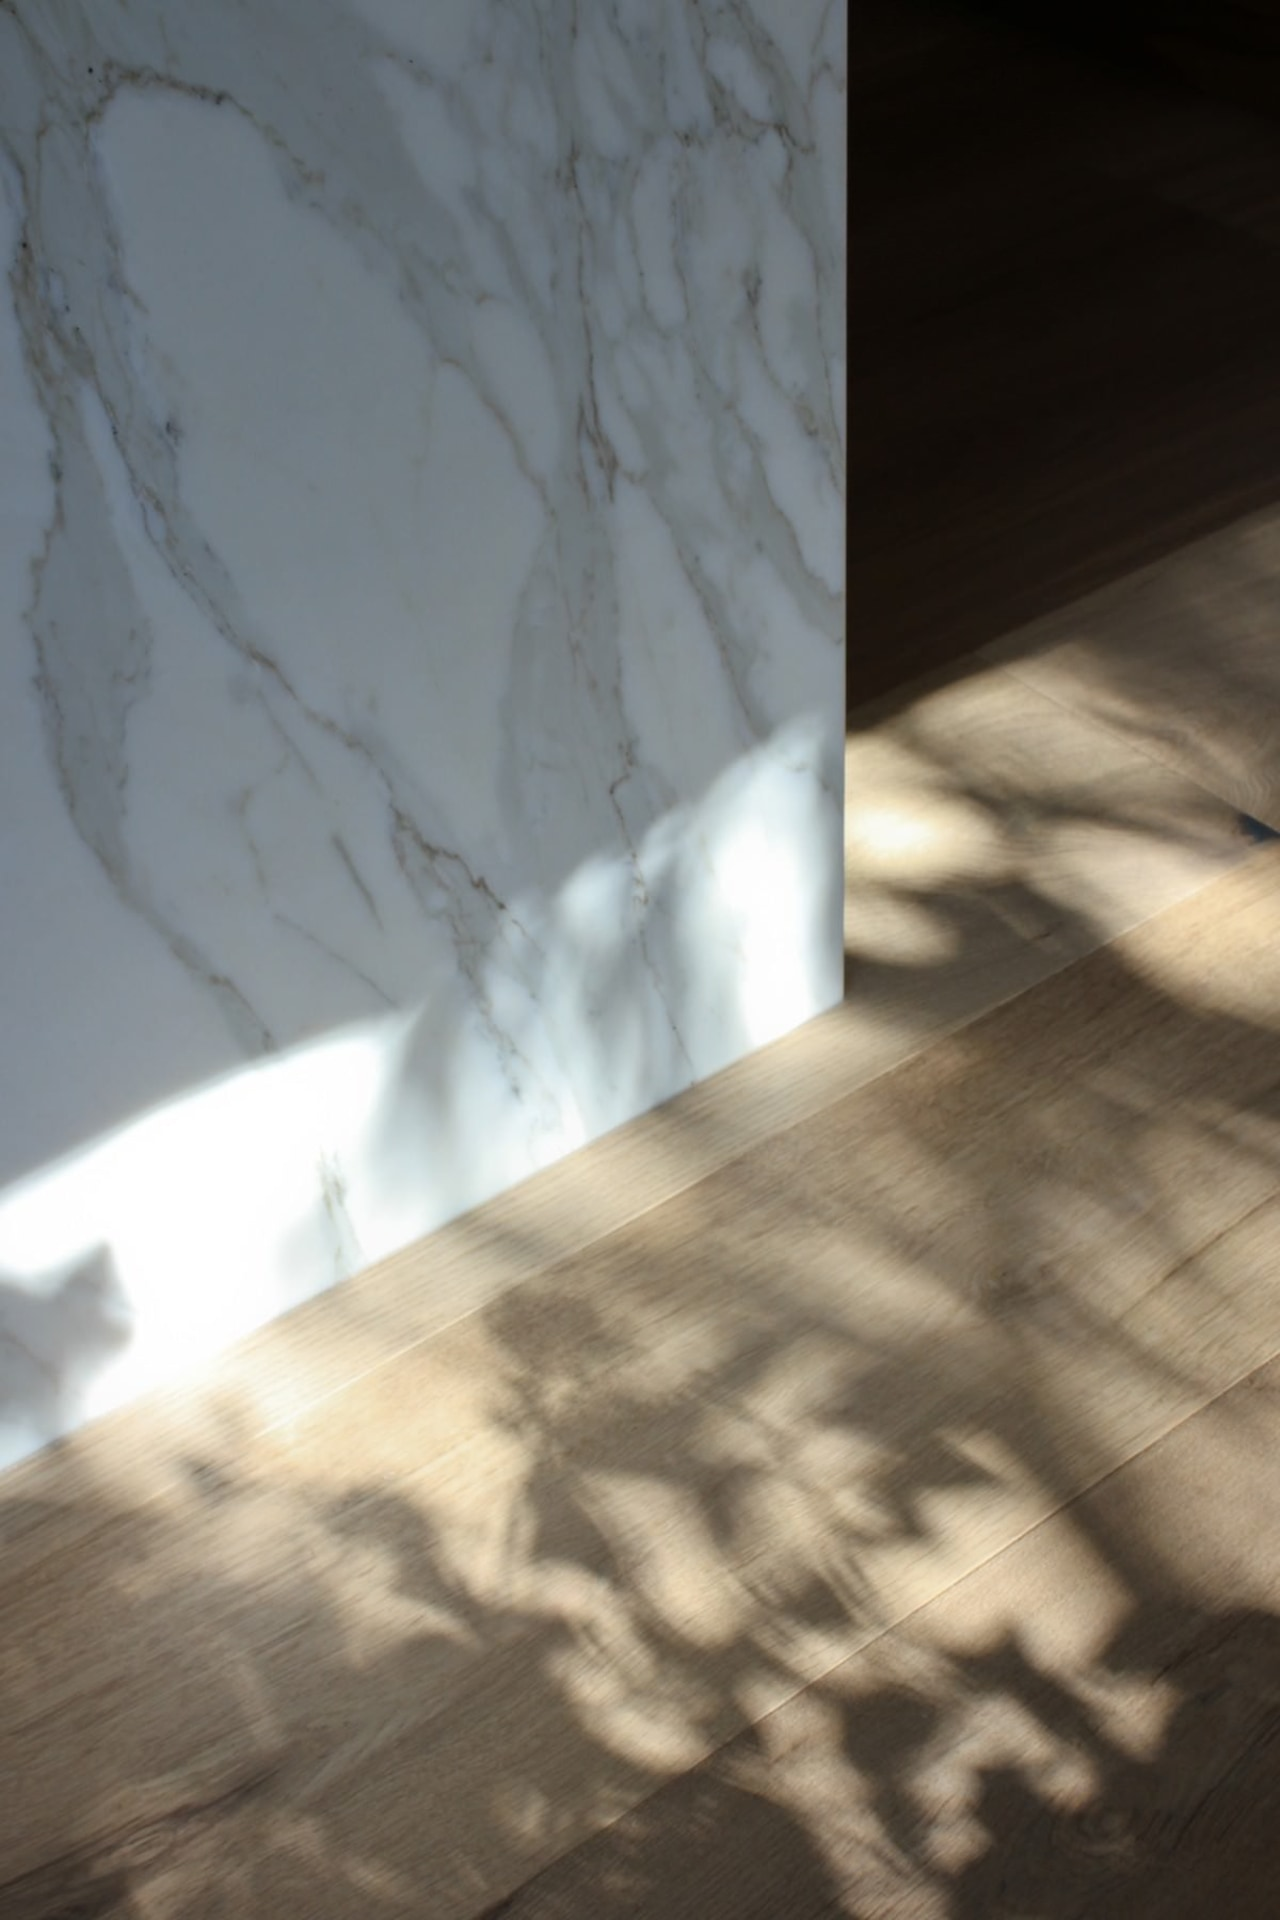 A close-up of where the island counter meets angle, atmosphere, daylighting, floor, light, line, reflection, shadow, sky, sunlight, texture, wall, wood, gray, brown